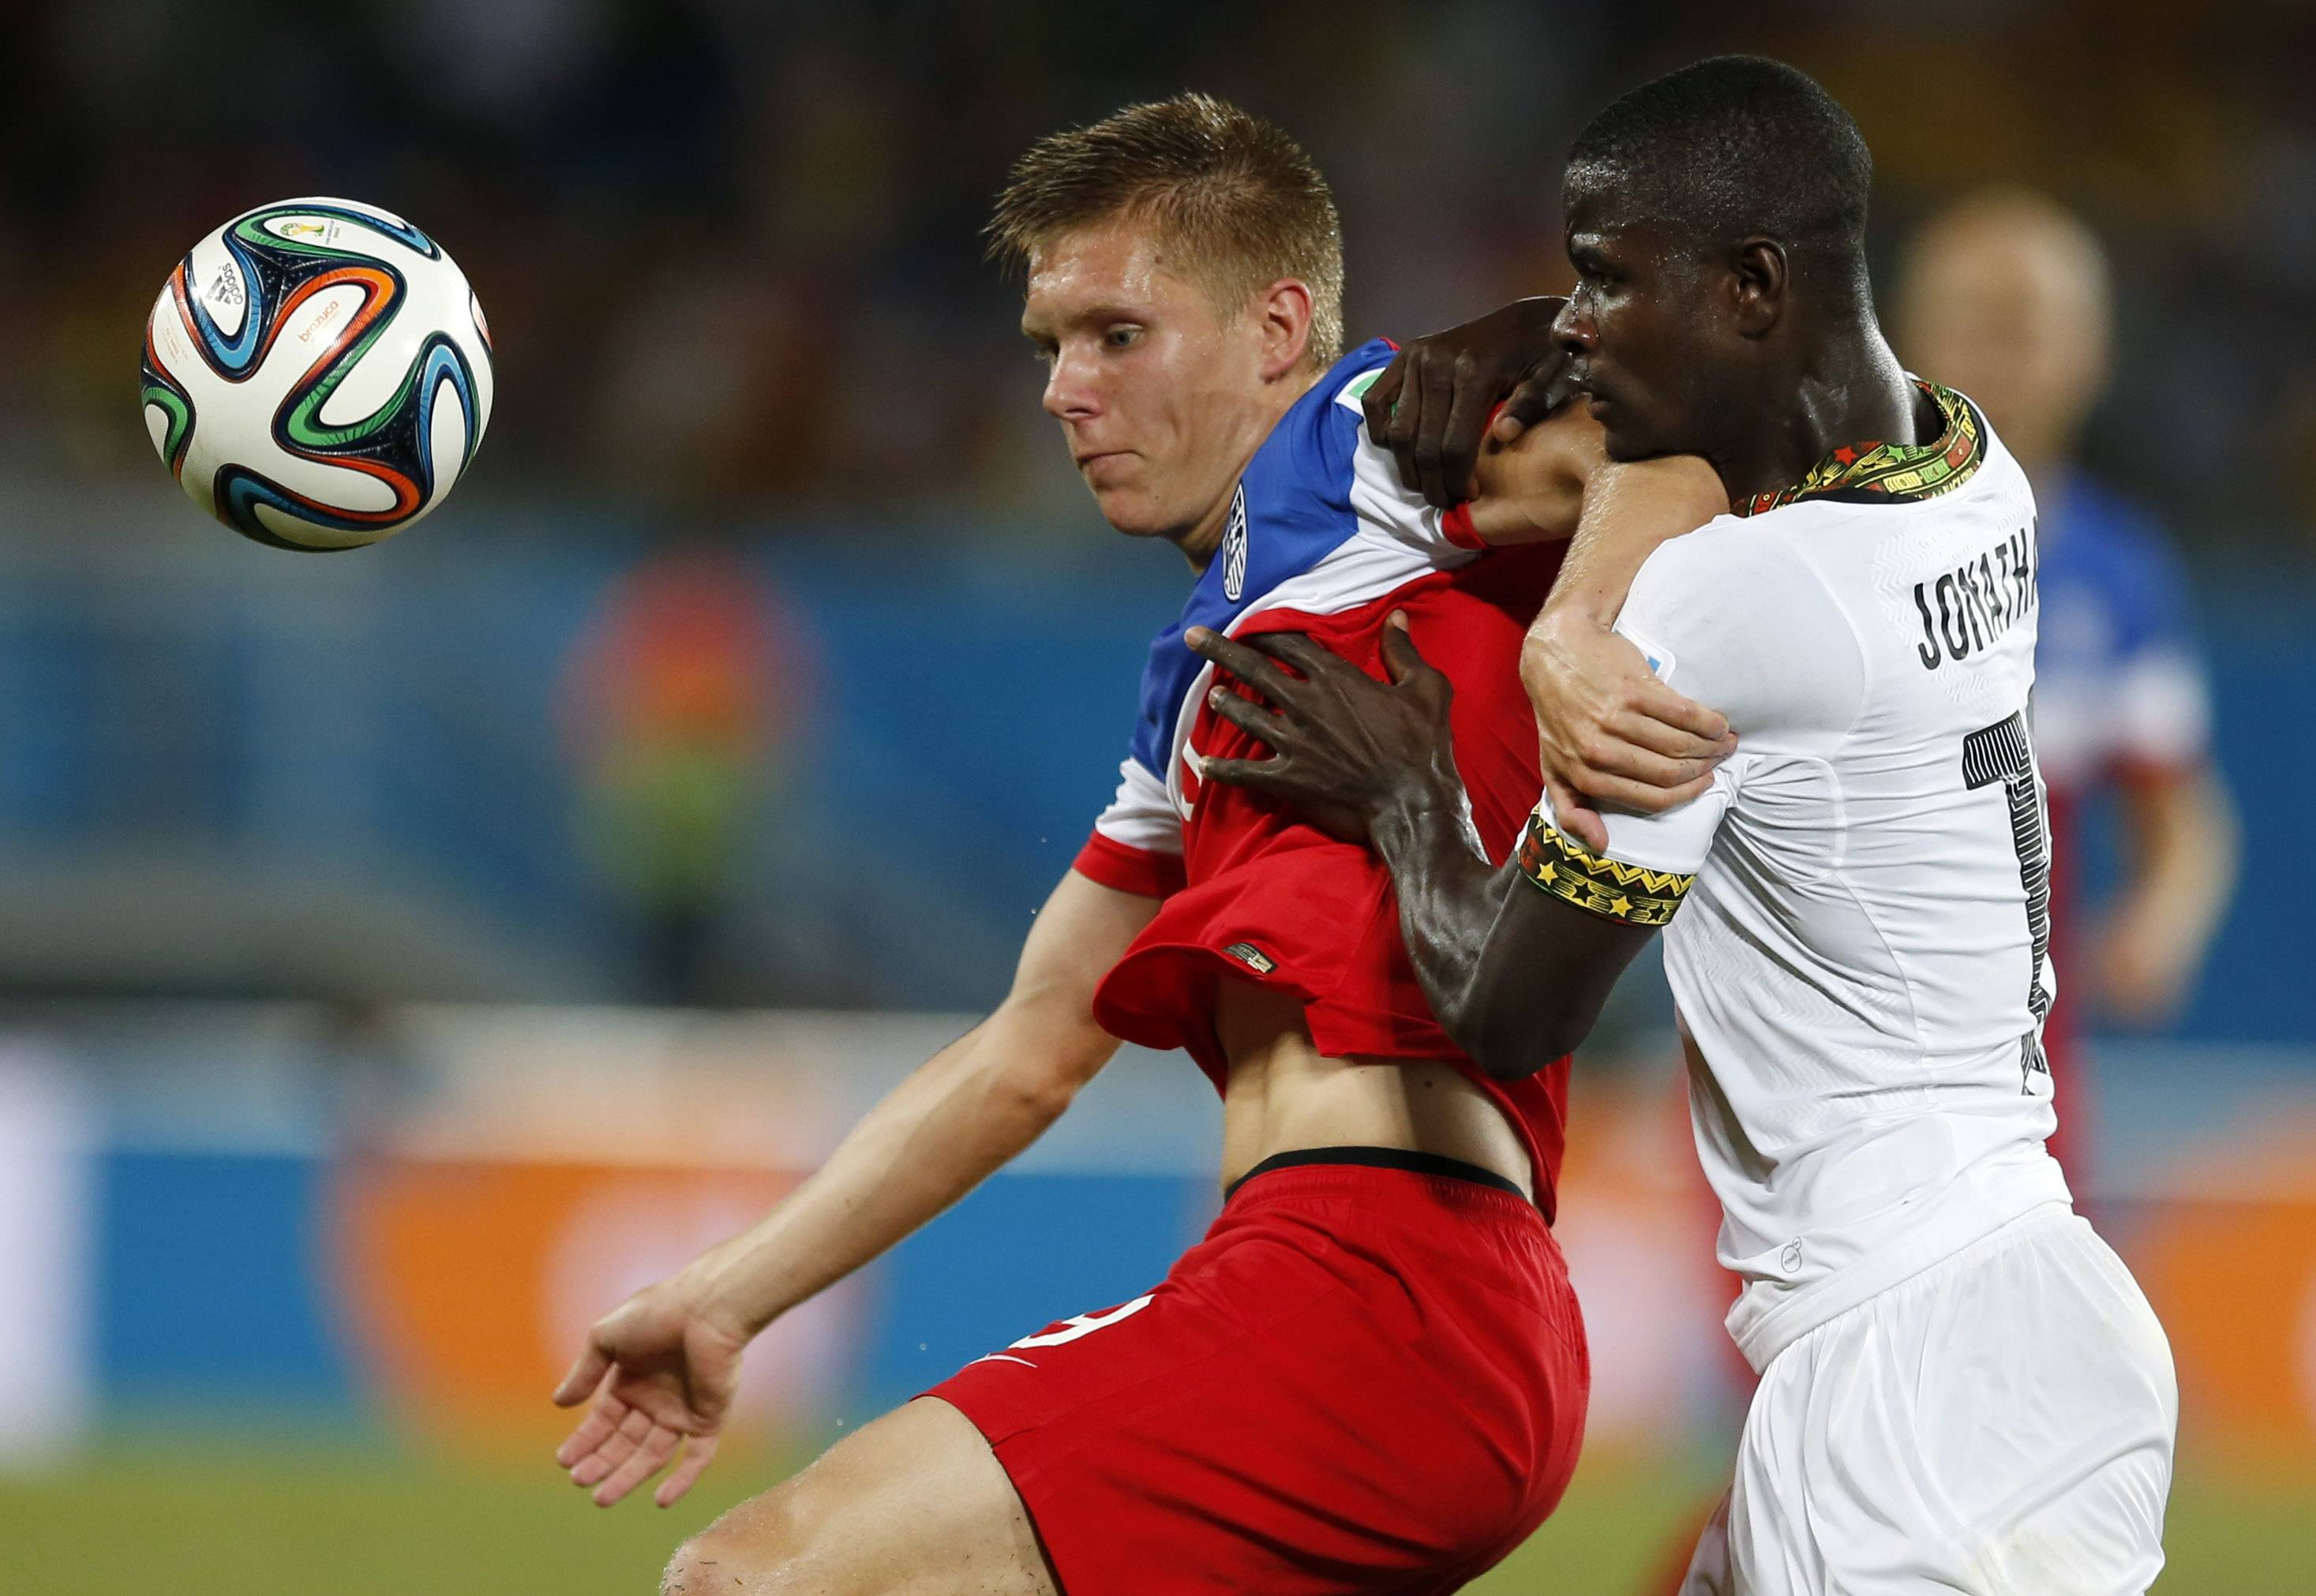 Ghana's Jonathan Mensah, right, tries to push aside United States' Aron Johannsson during the group G World Cup soccer match between Ghana and the United States at the Arena das Dunas in Natal, Brazil, Monday, June 16, 2014.